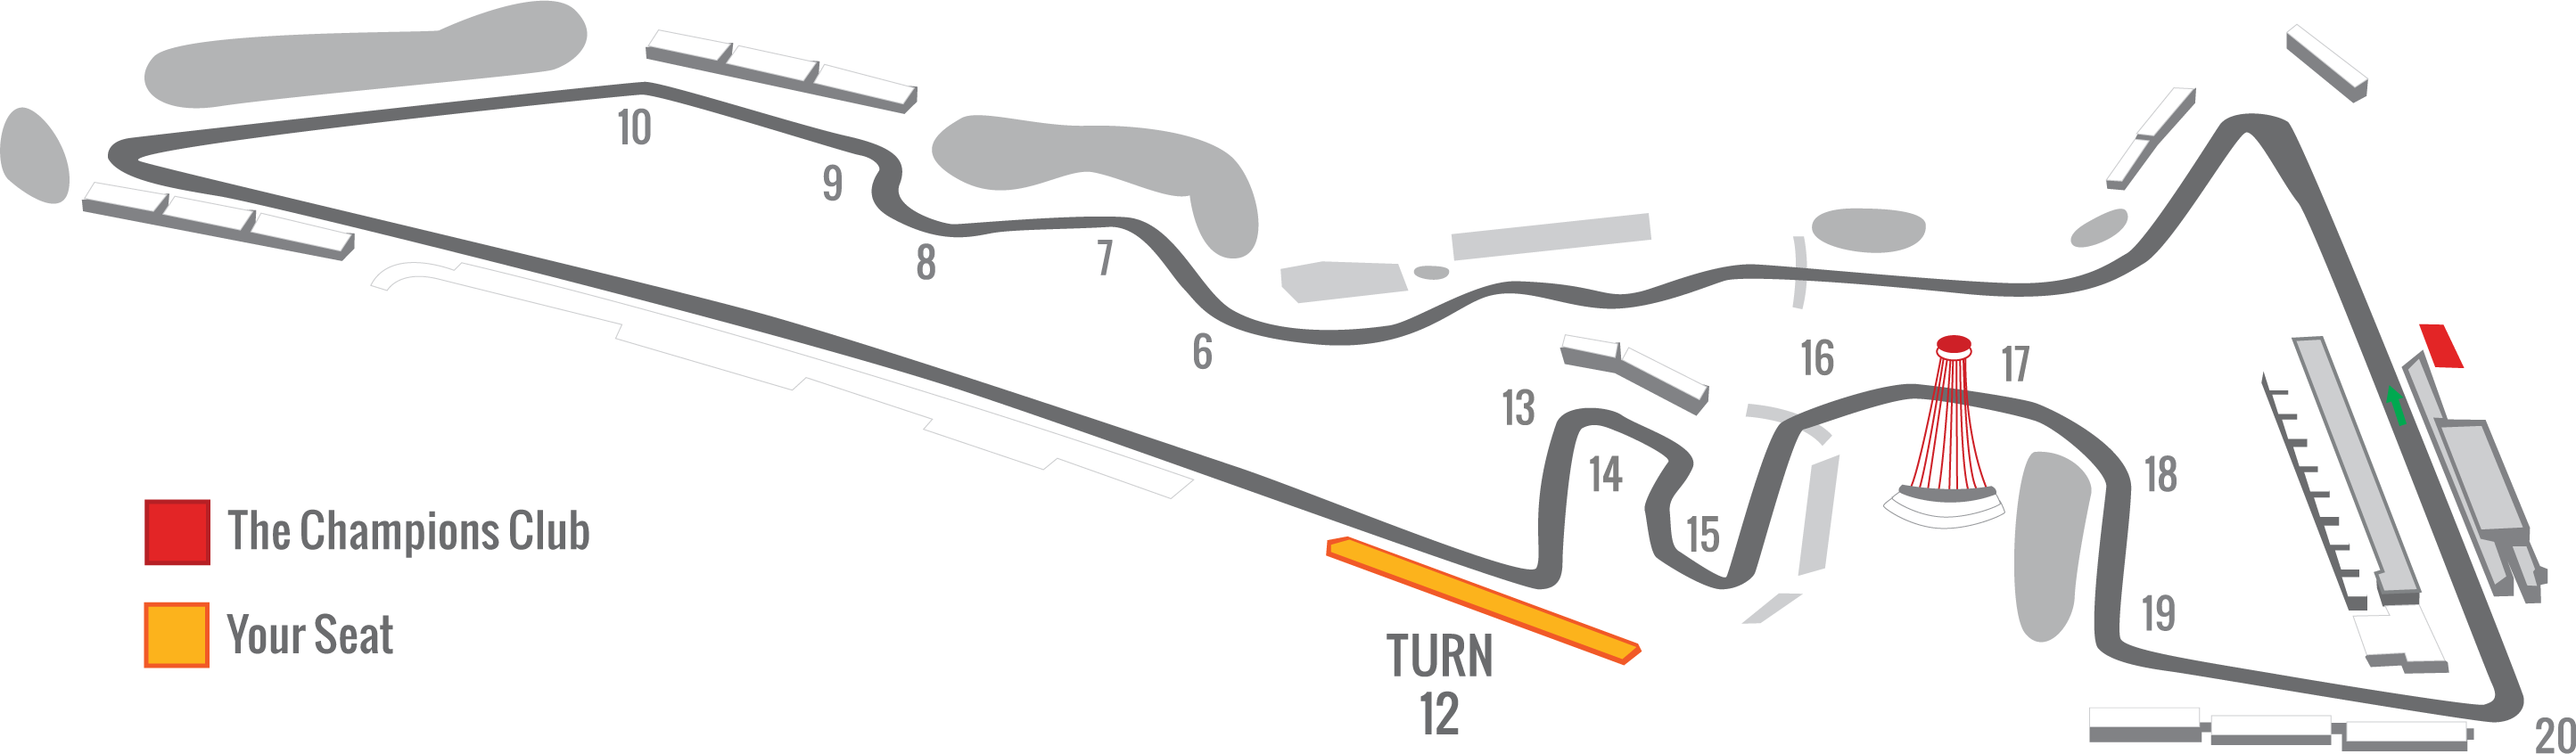 2019 f1 usgp tickets turn 12 official ticket package